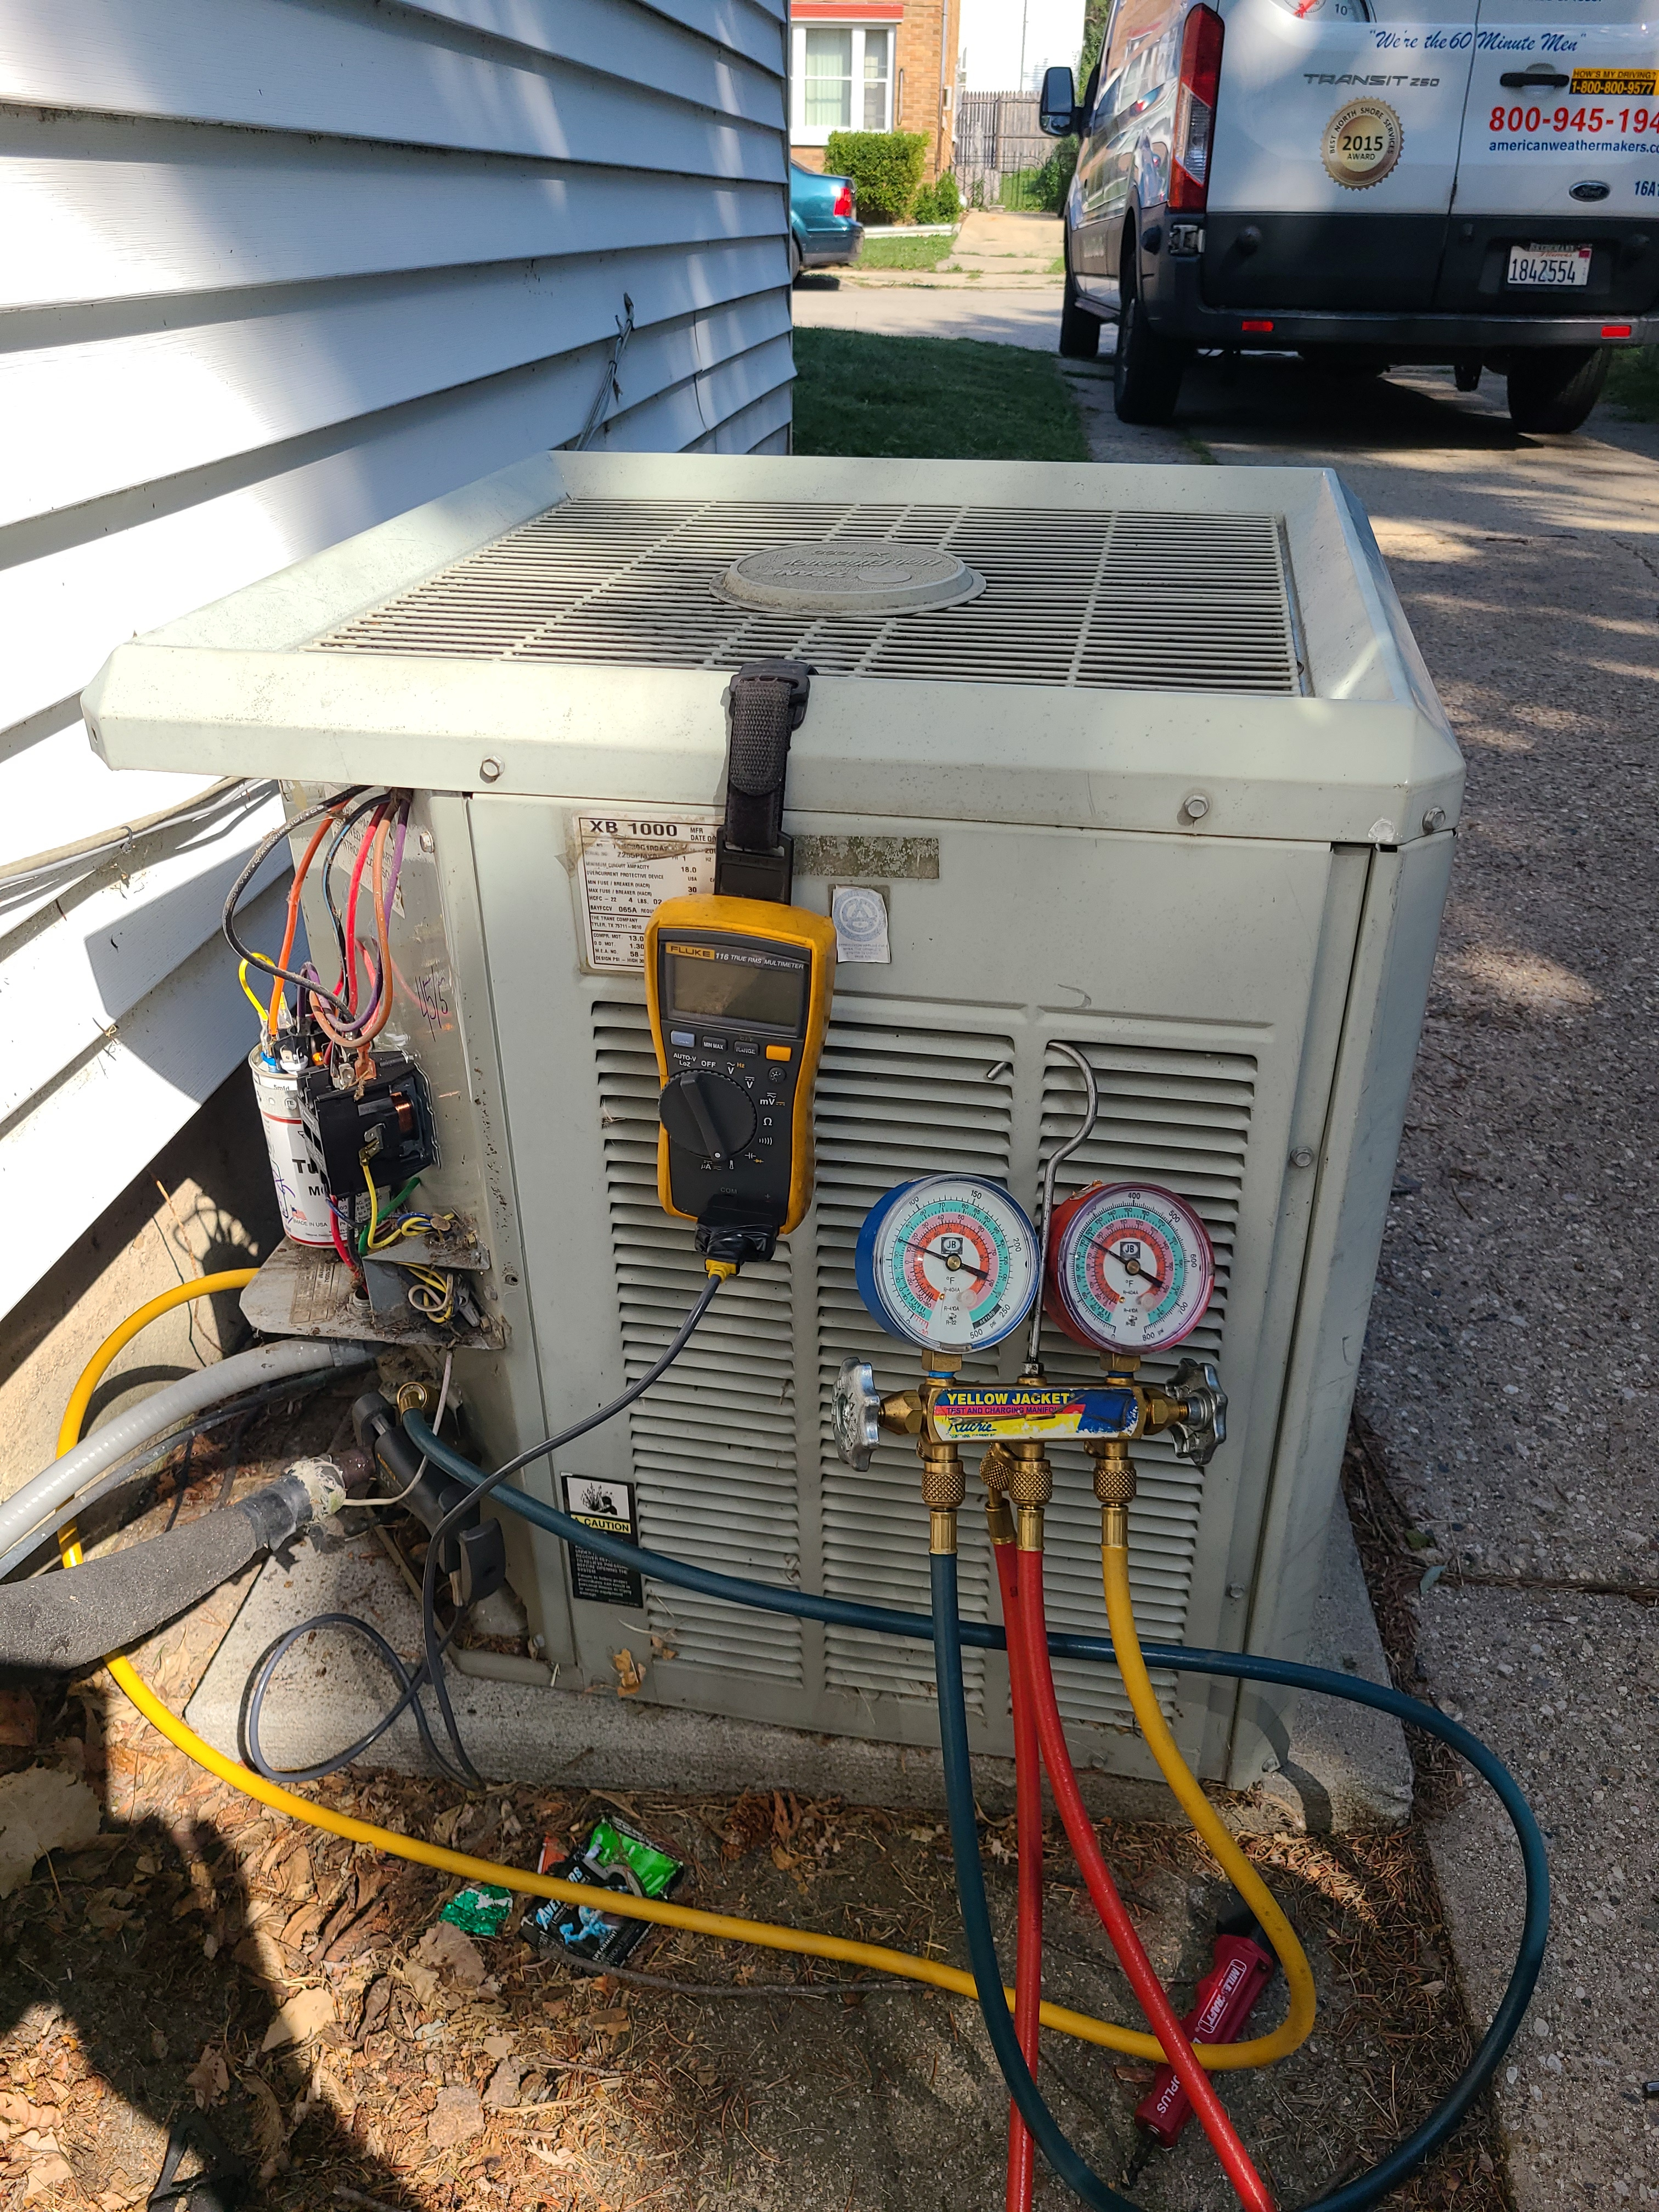 Trane ac no cooling issue diagnosed and repaired.